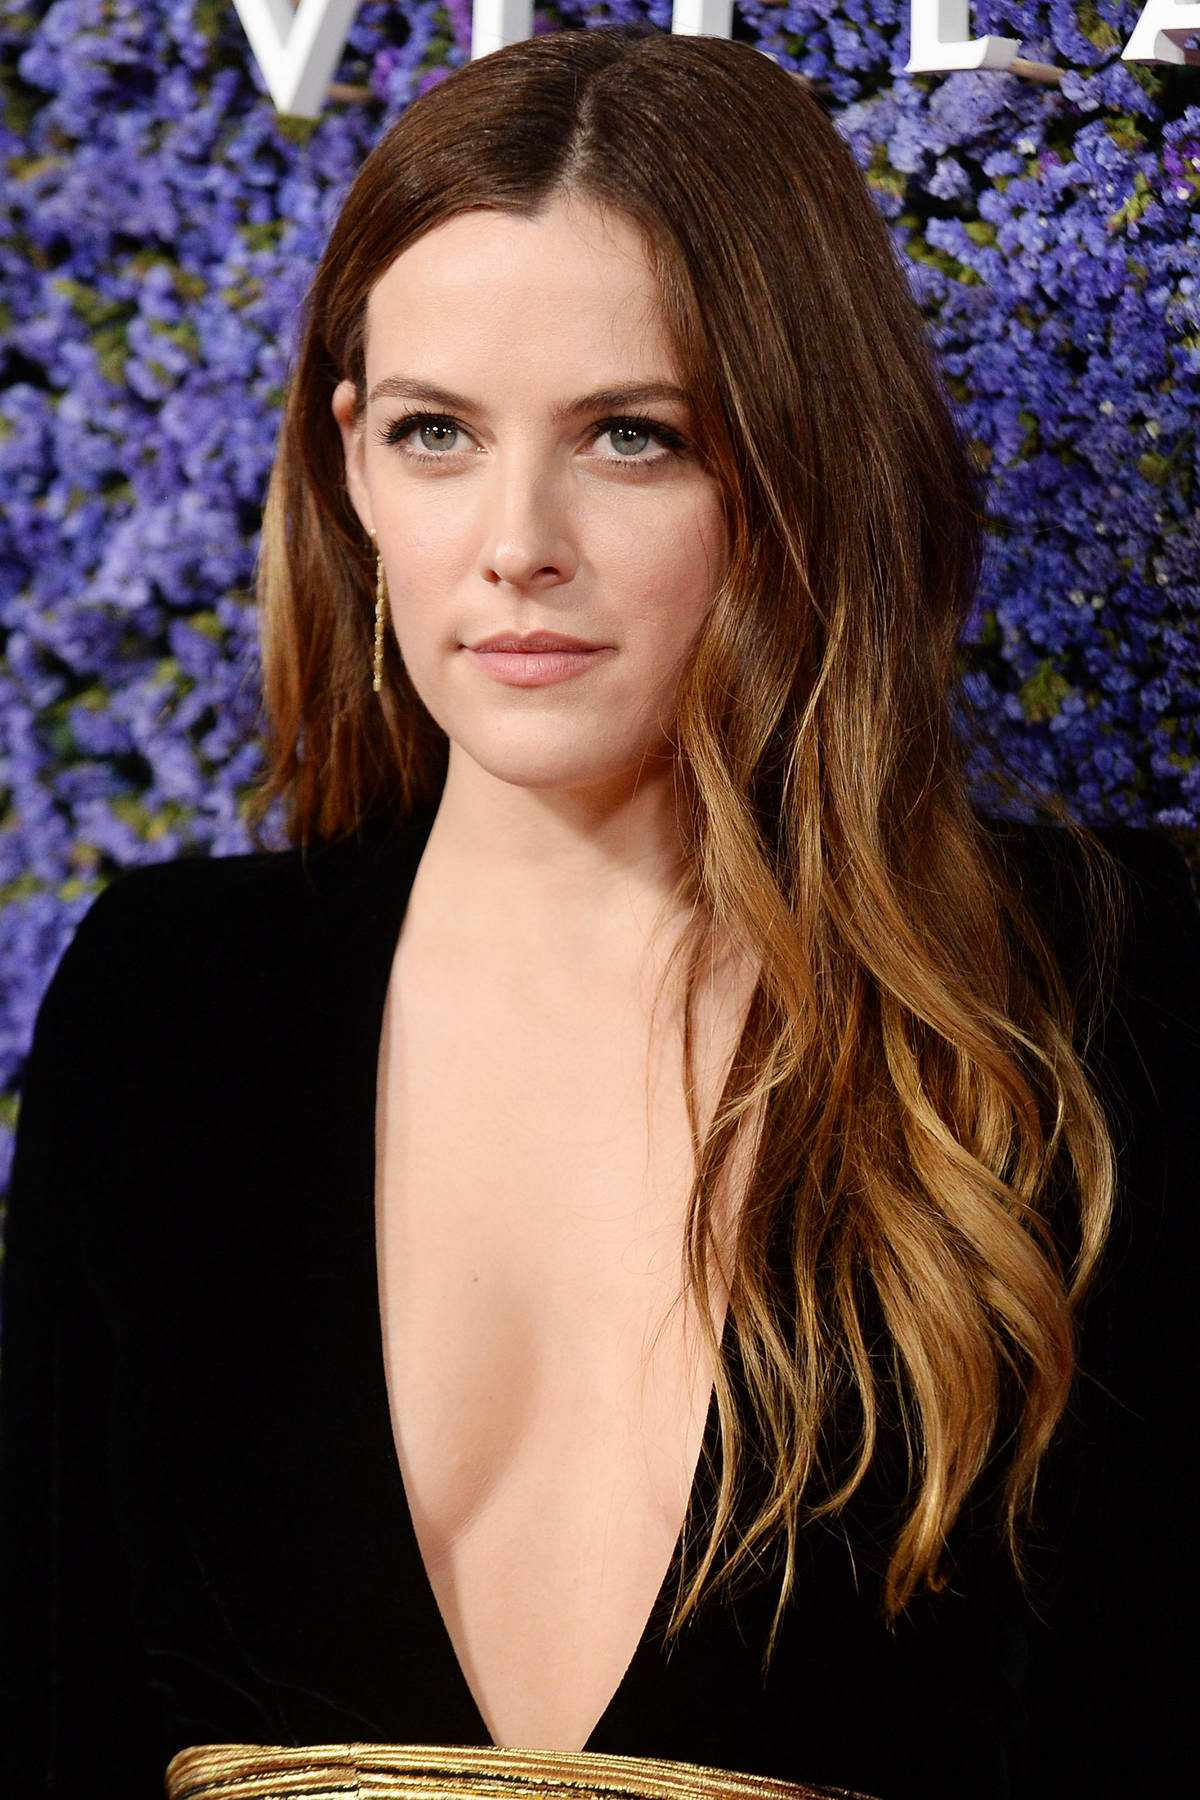 Riley Keough attends Caruso's Palisades Village Opening Gala at Palisades Village in Pacific Palisades, California